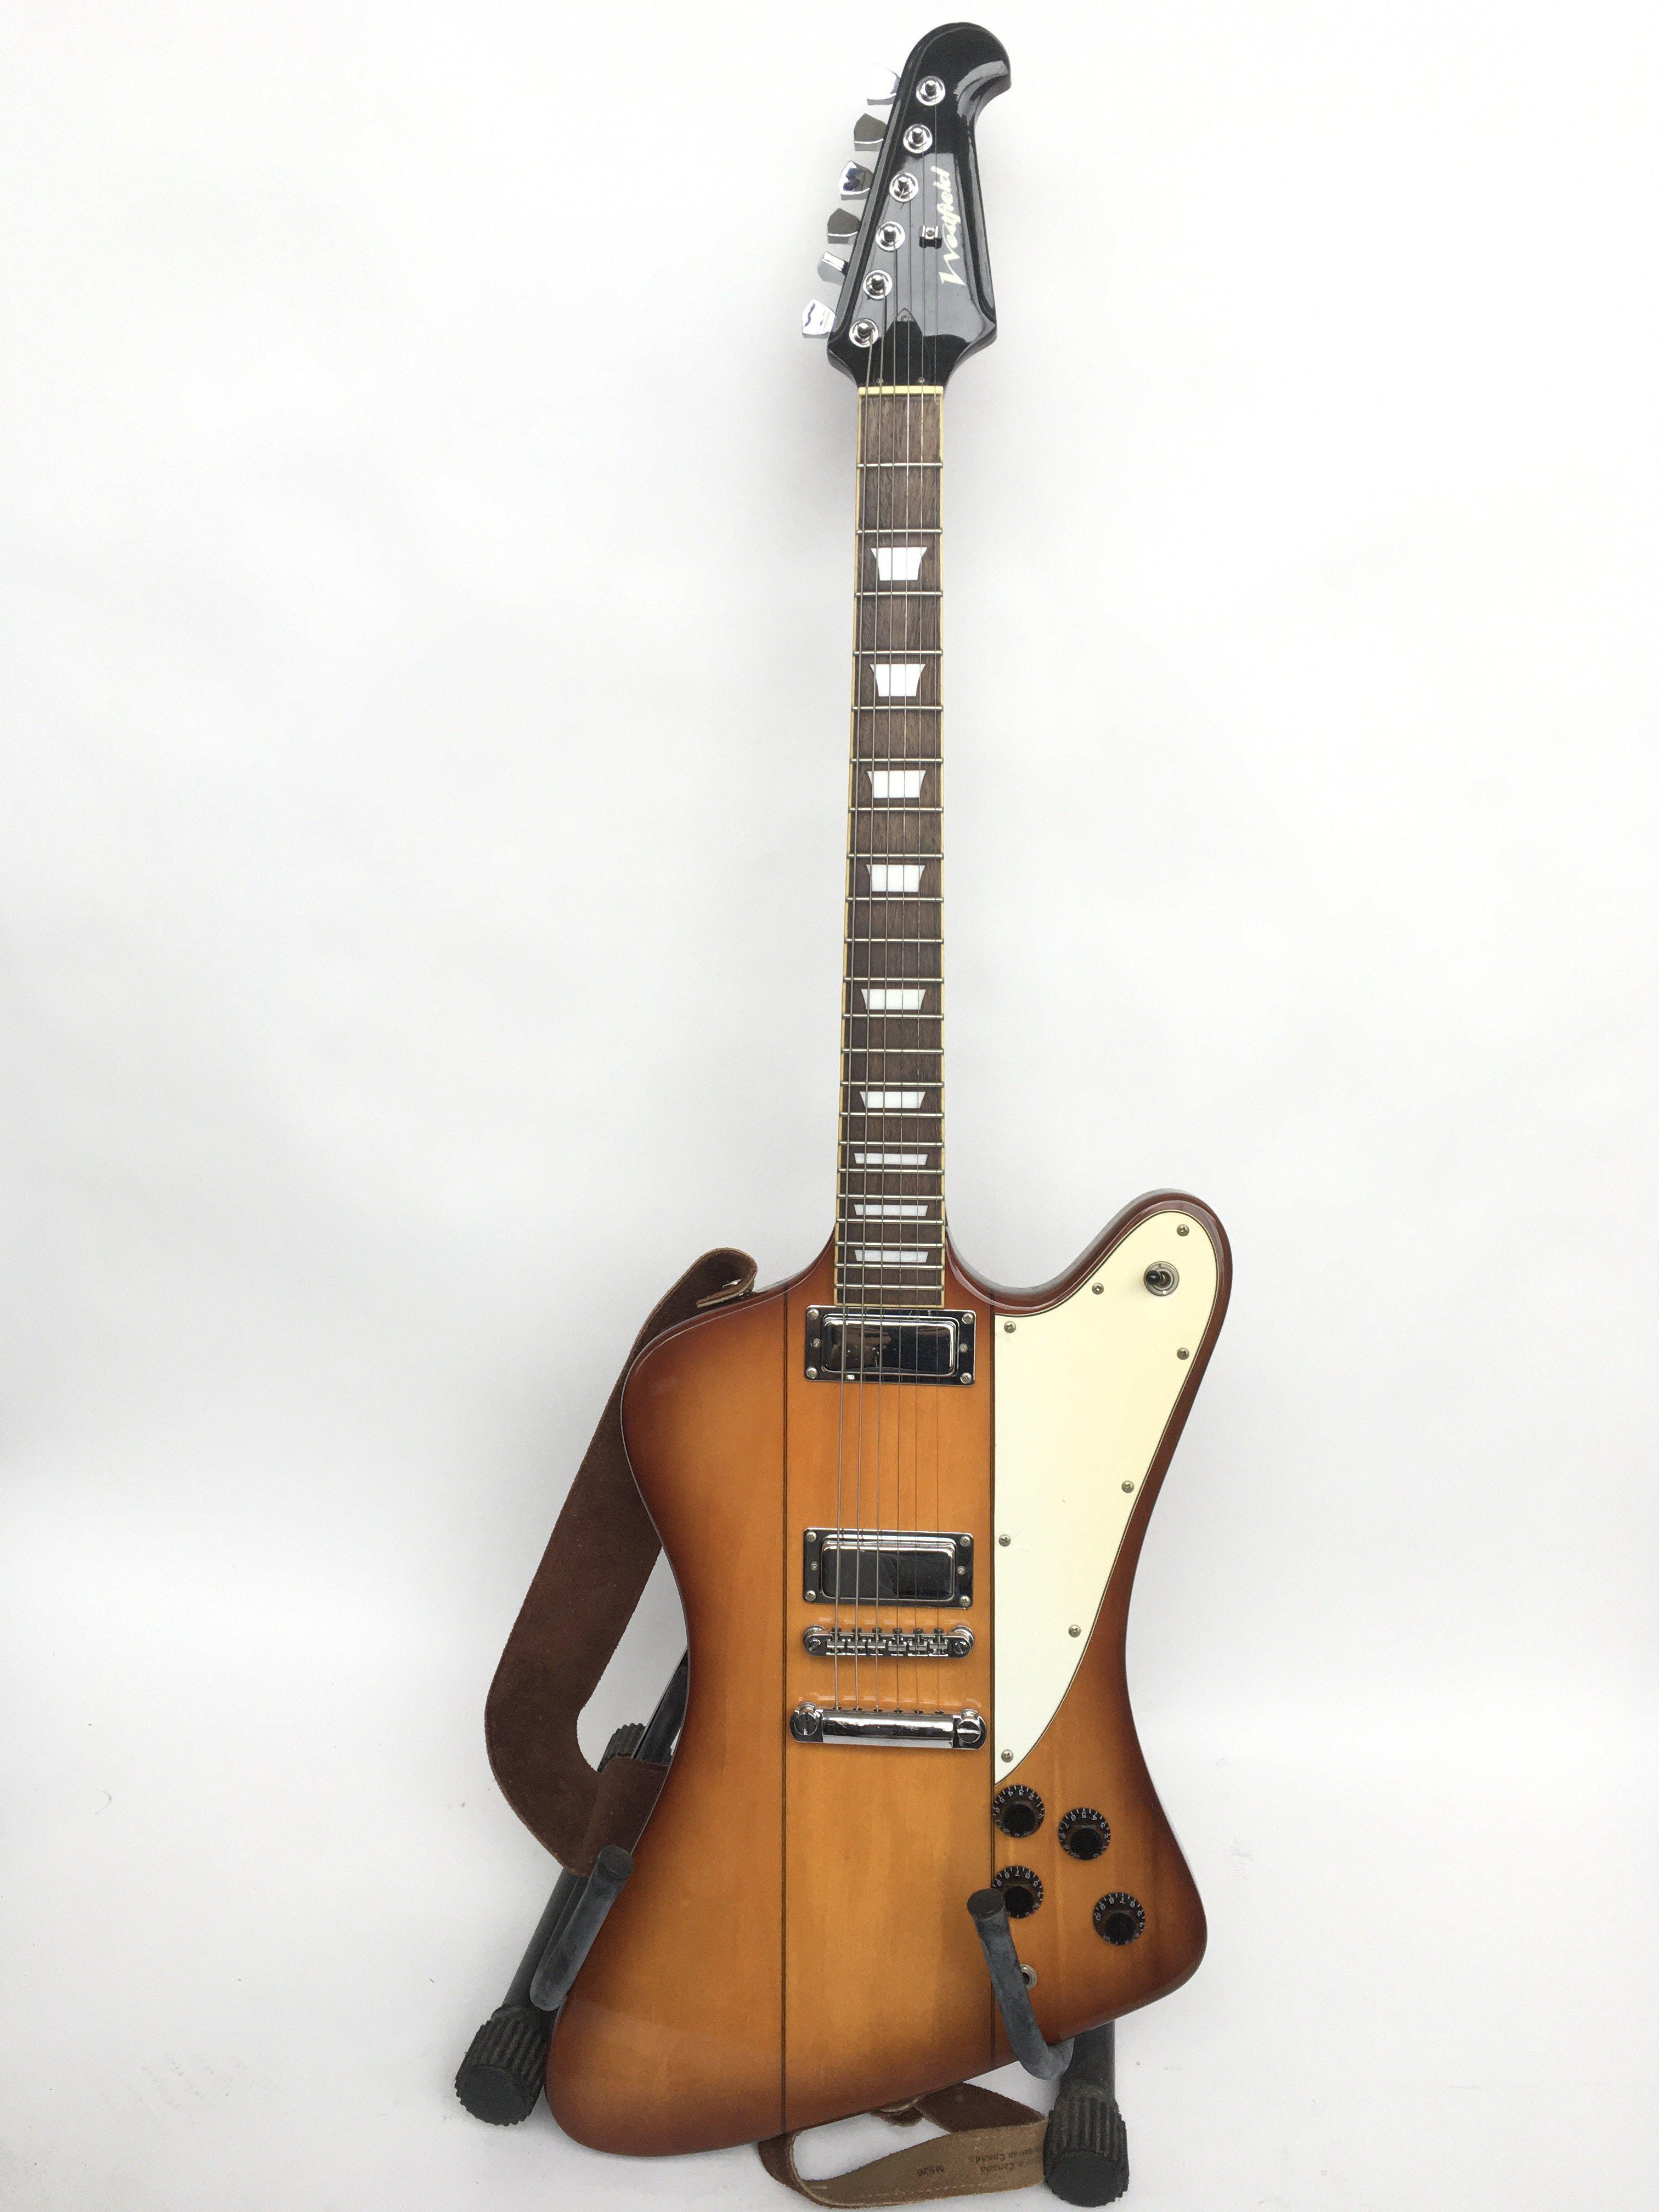 A Westfield 'Explorer' style electric guitar suppl